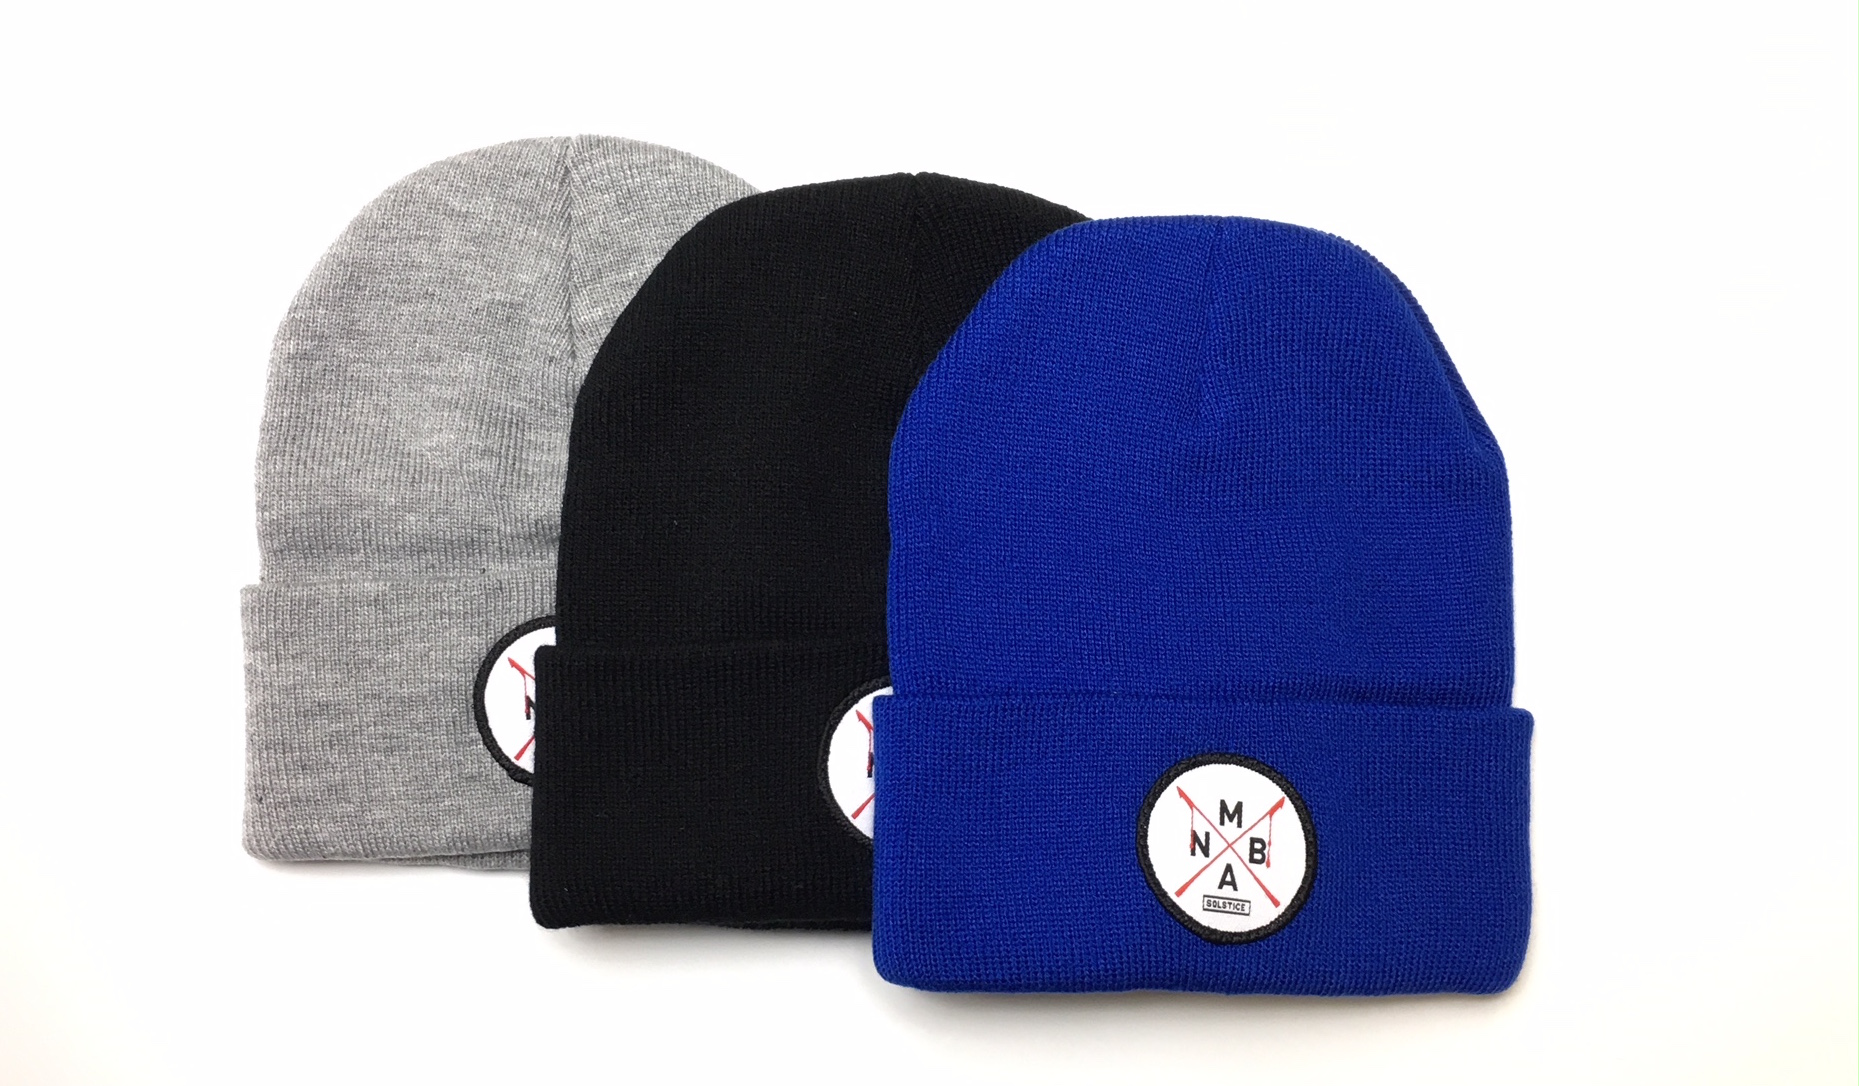 - NBMA/SOLSTICE Harpoon Beanies Are Back. Click To Buy